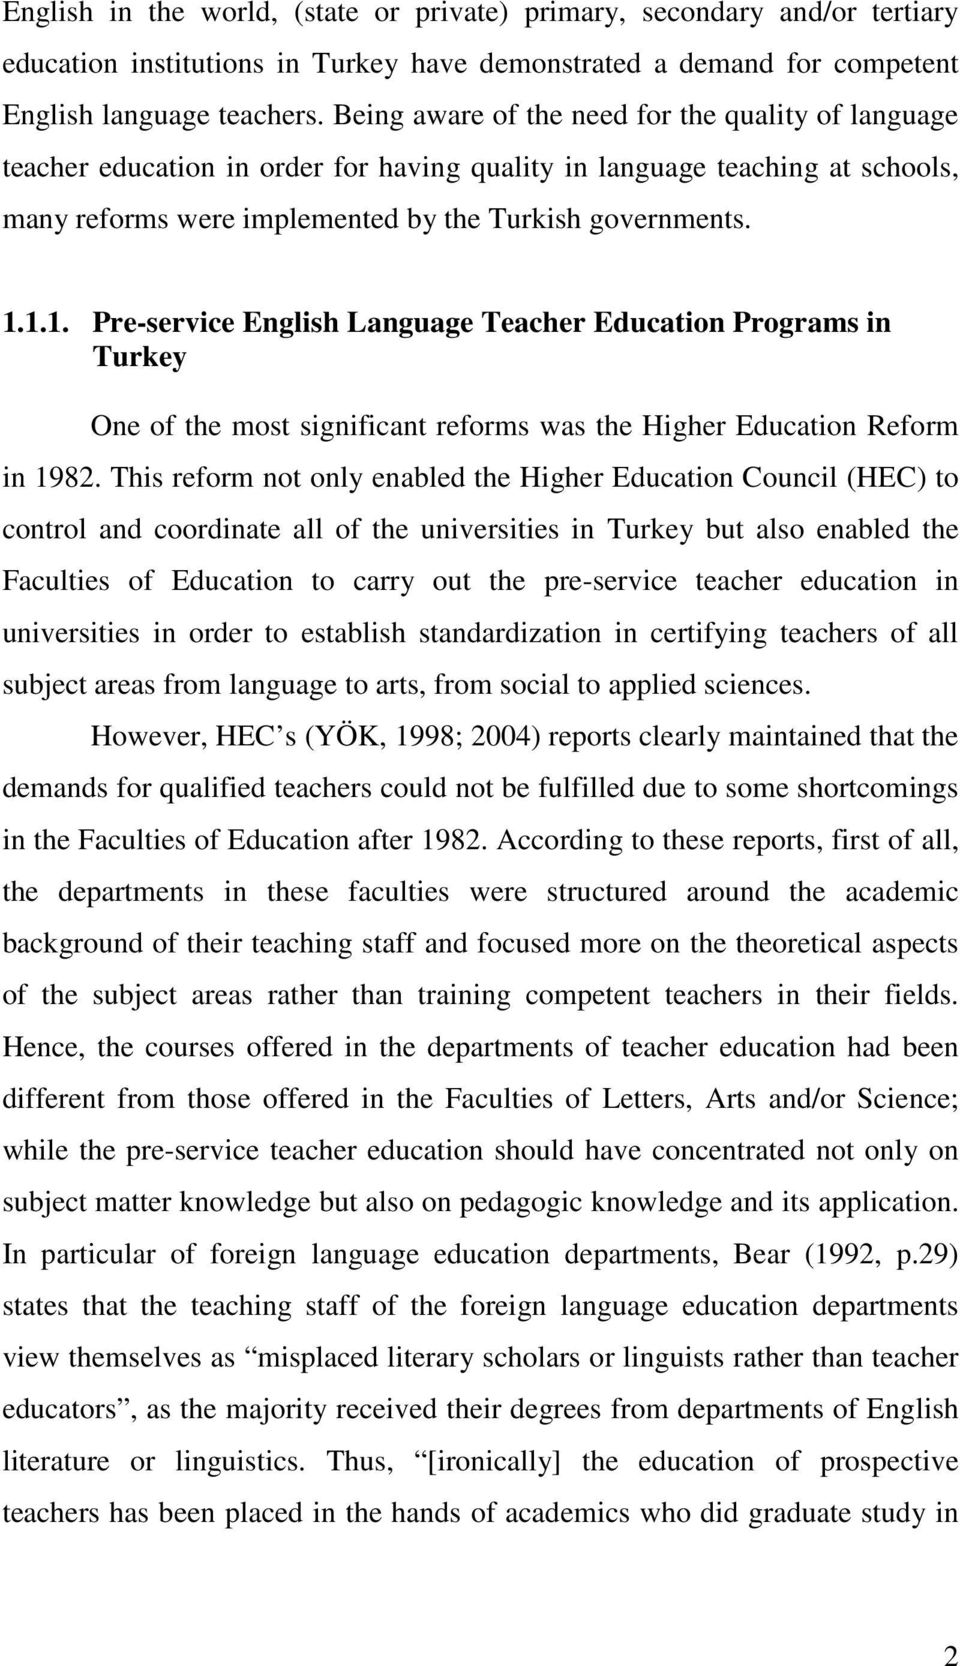 1.1. Pre-service English Language Teacher Education Programs in Turkey One of the most significant reforms was the Higher Education Reform in 1982.